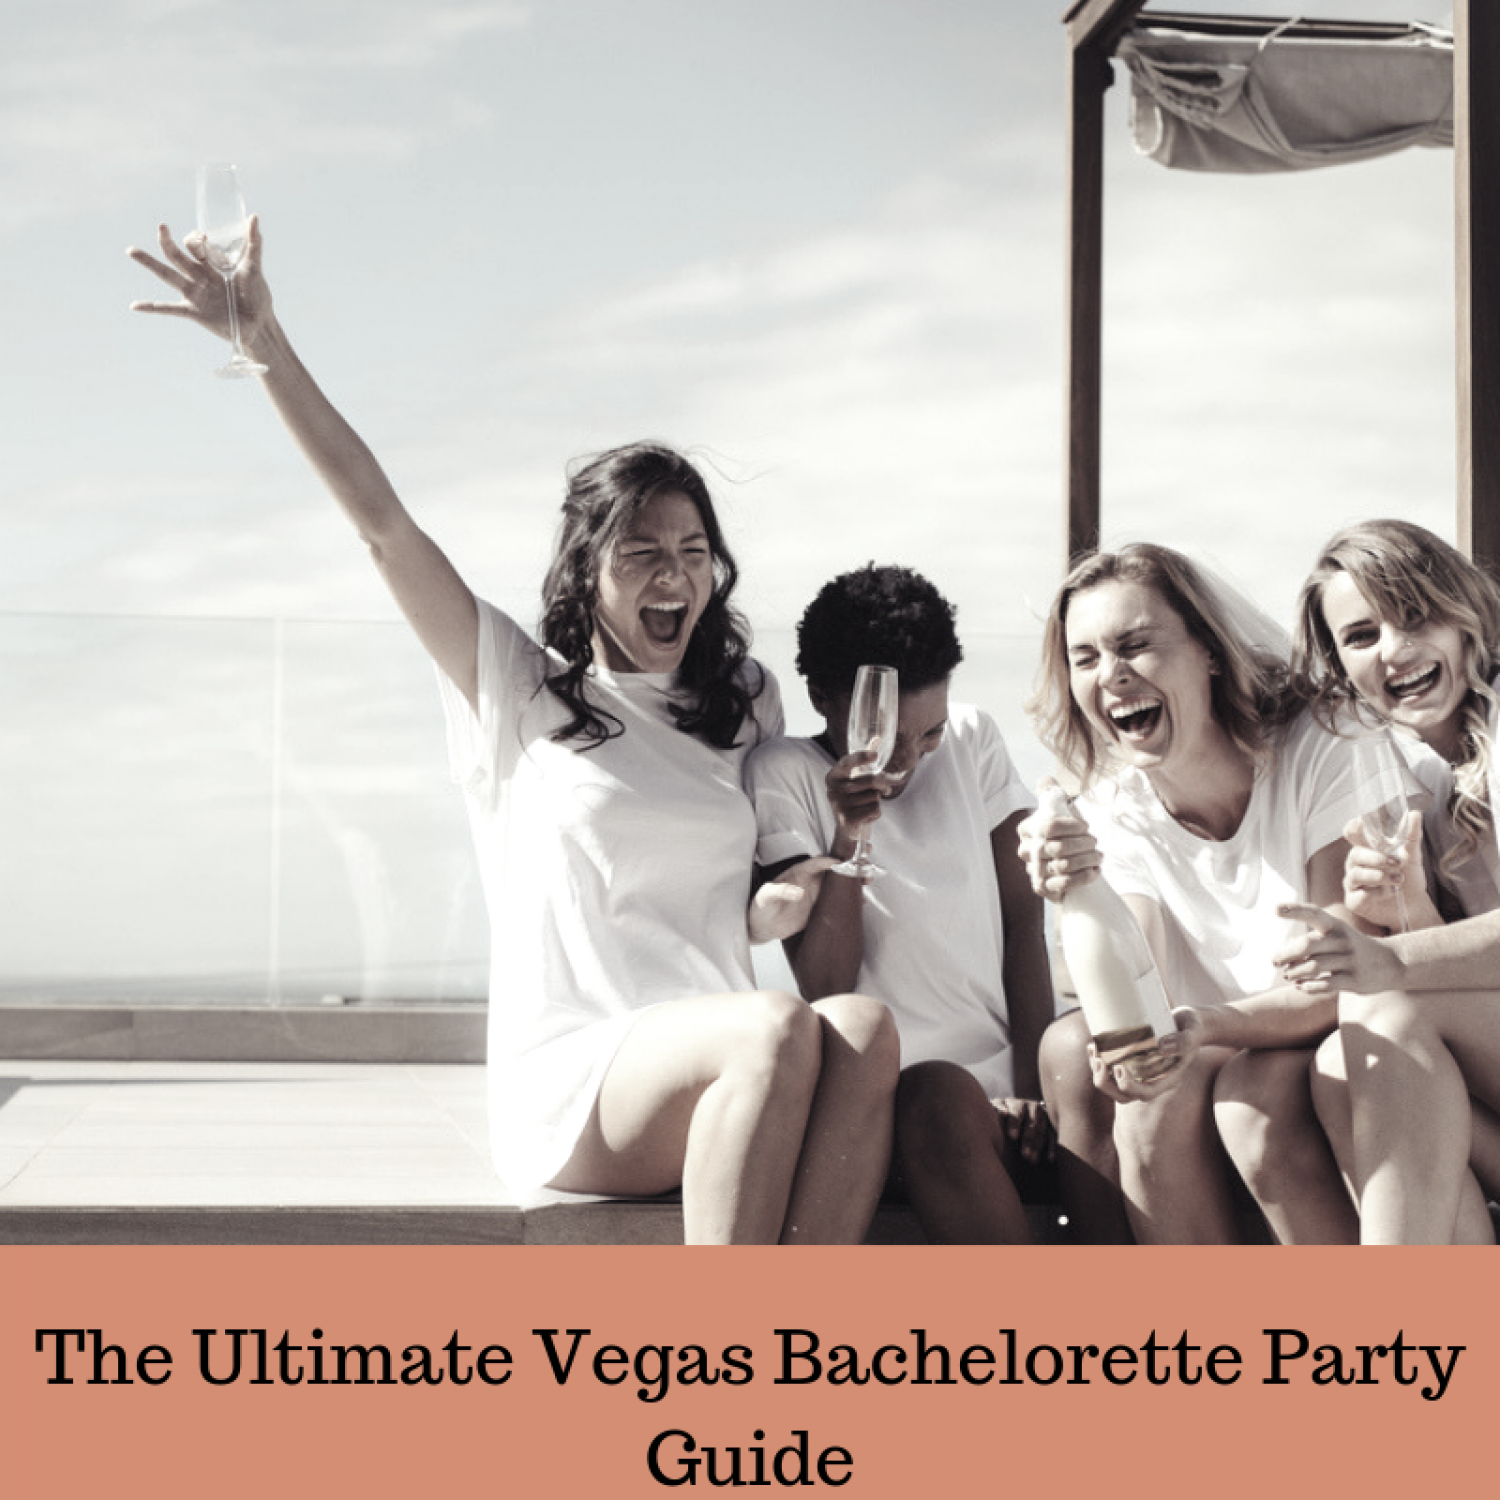 The Ultimate Vegas Bachelorette Party Guide Infographic